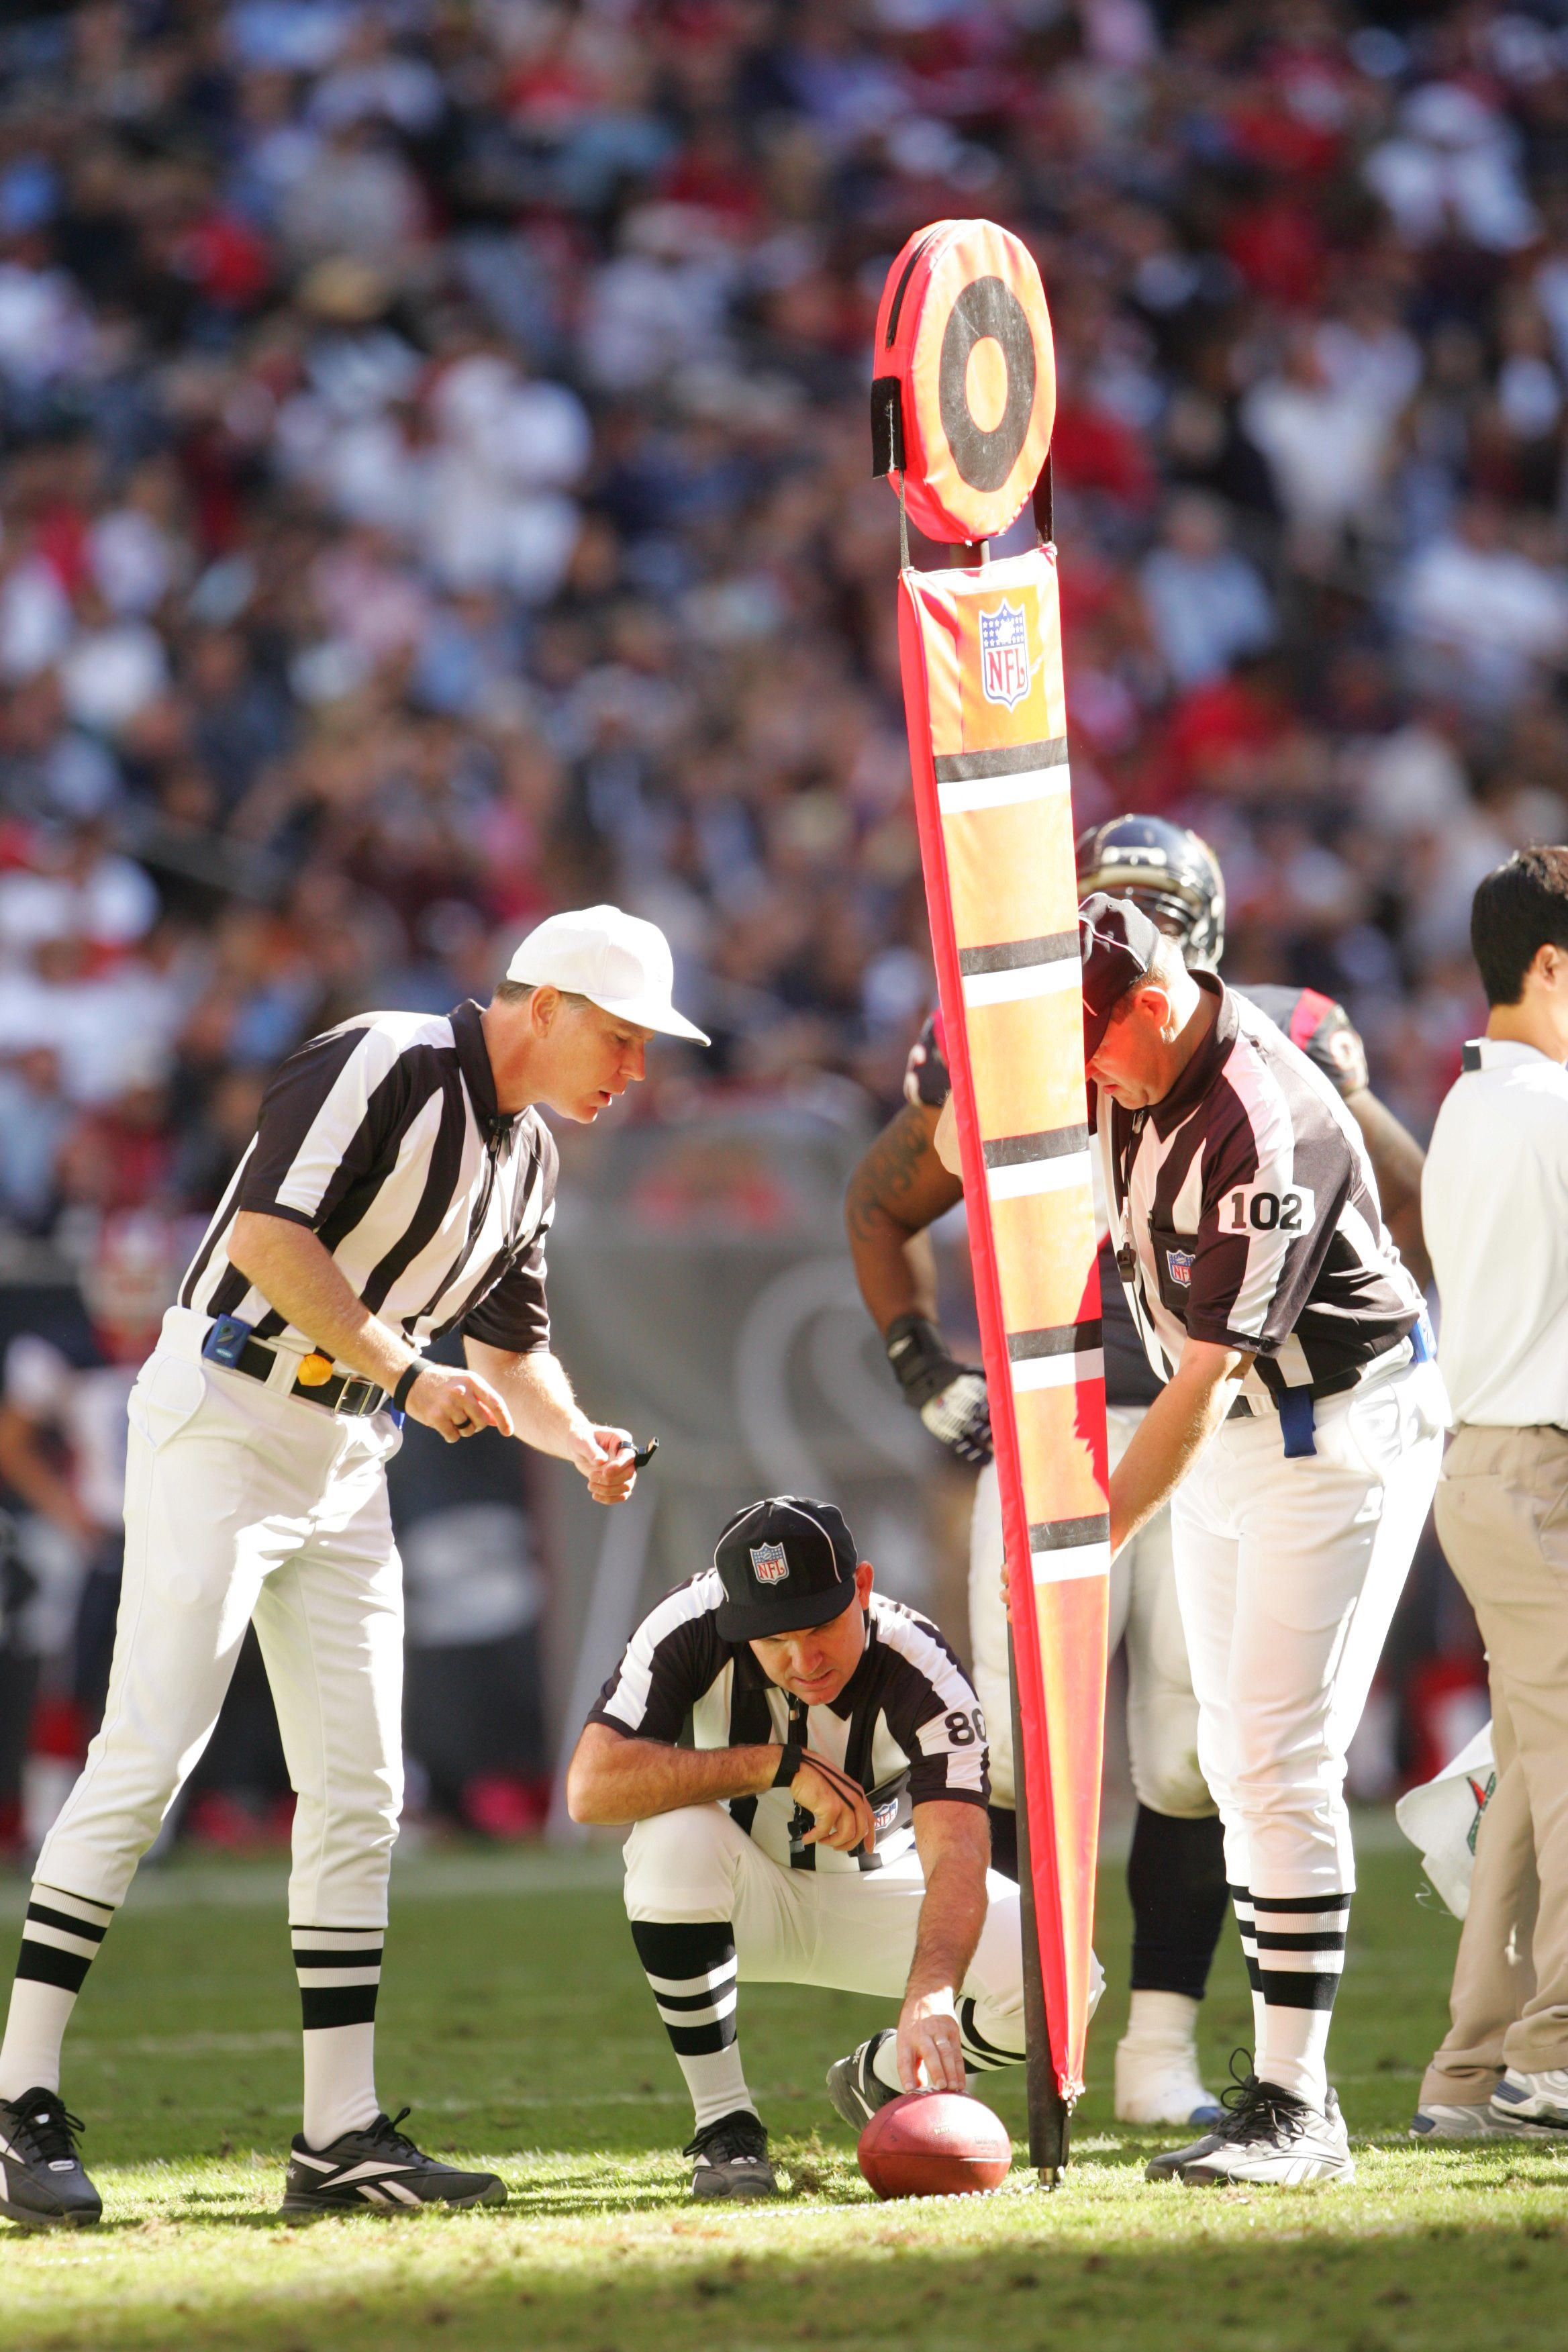 HOUSTON - NOVEMBER 19:  Referee Terry McAulay, field judge Greg Gautreaux and umpire Bruce Stritesky measure for a first down during the Buffalo Bills game against the Houston Texans on November 19, 2006 at Reliant Stadium in Houston, Texas. The Bills def